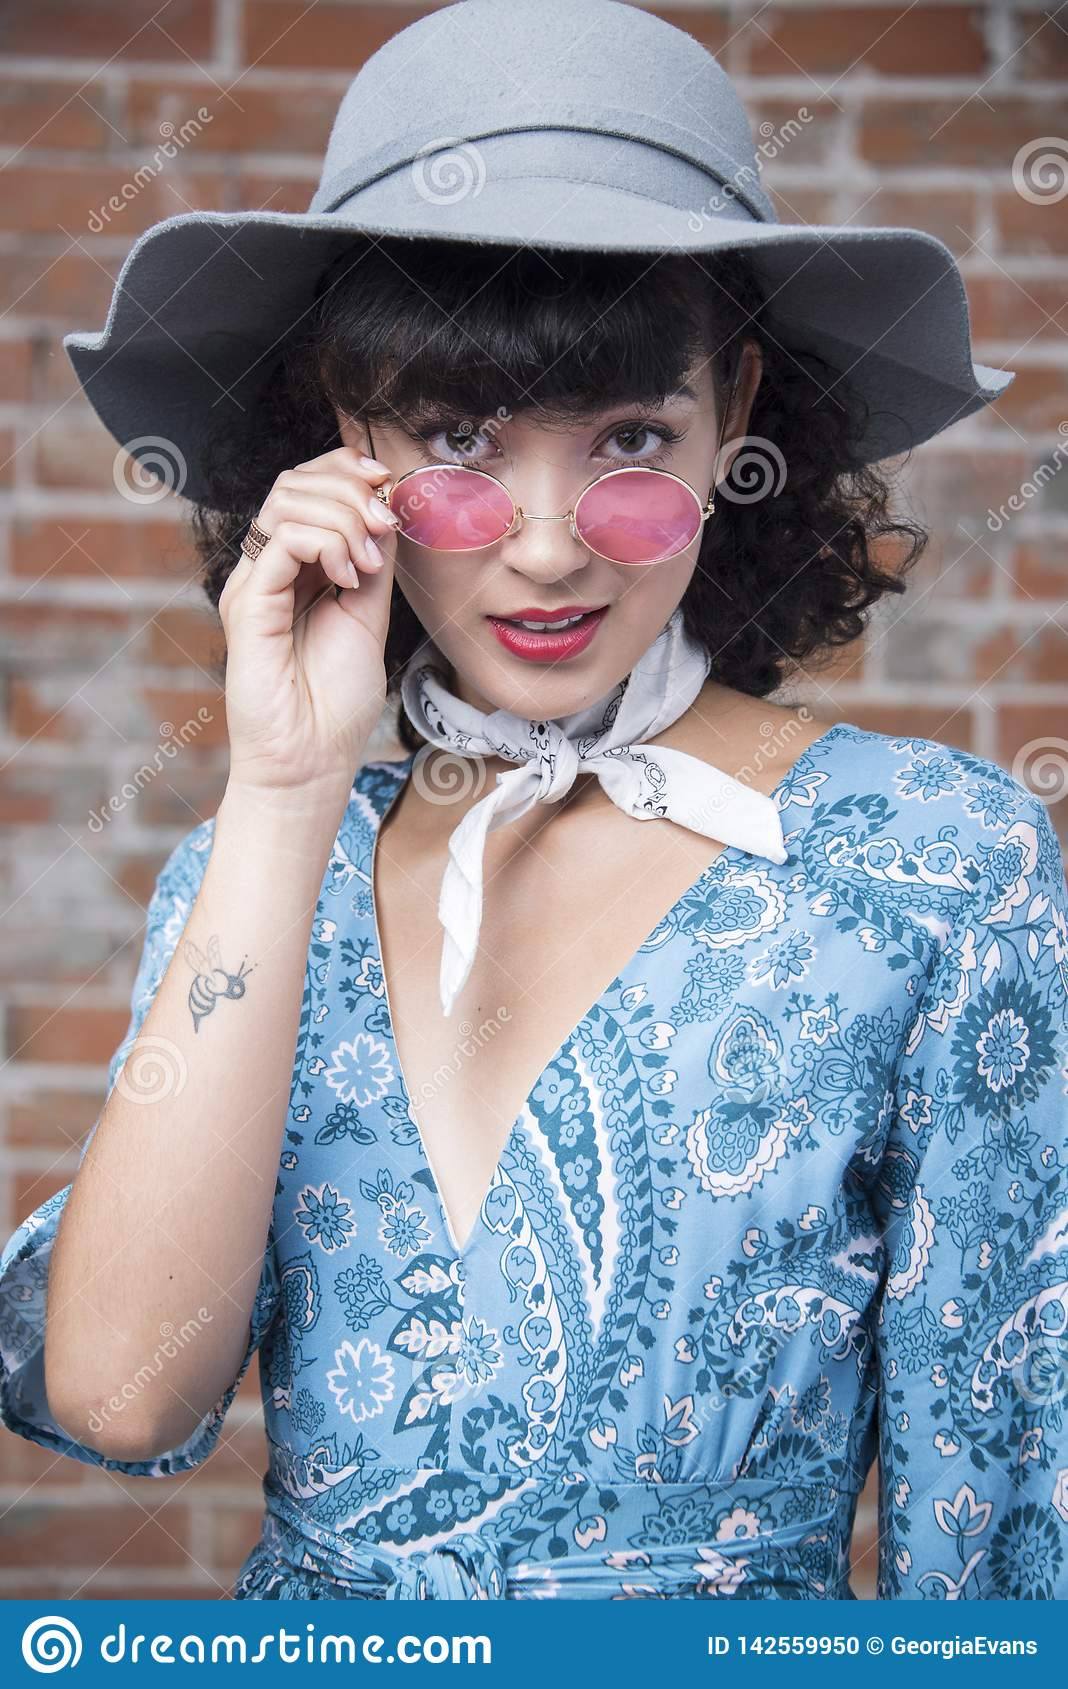 Beautiful oriental woman portrait with rose colored glasses and fashionable sun hat with small tattoo, pretty dress, bandan